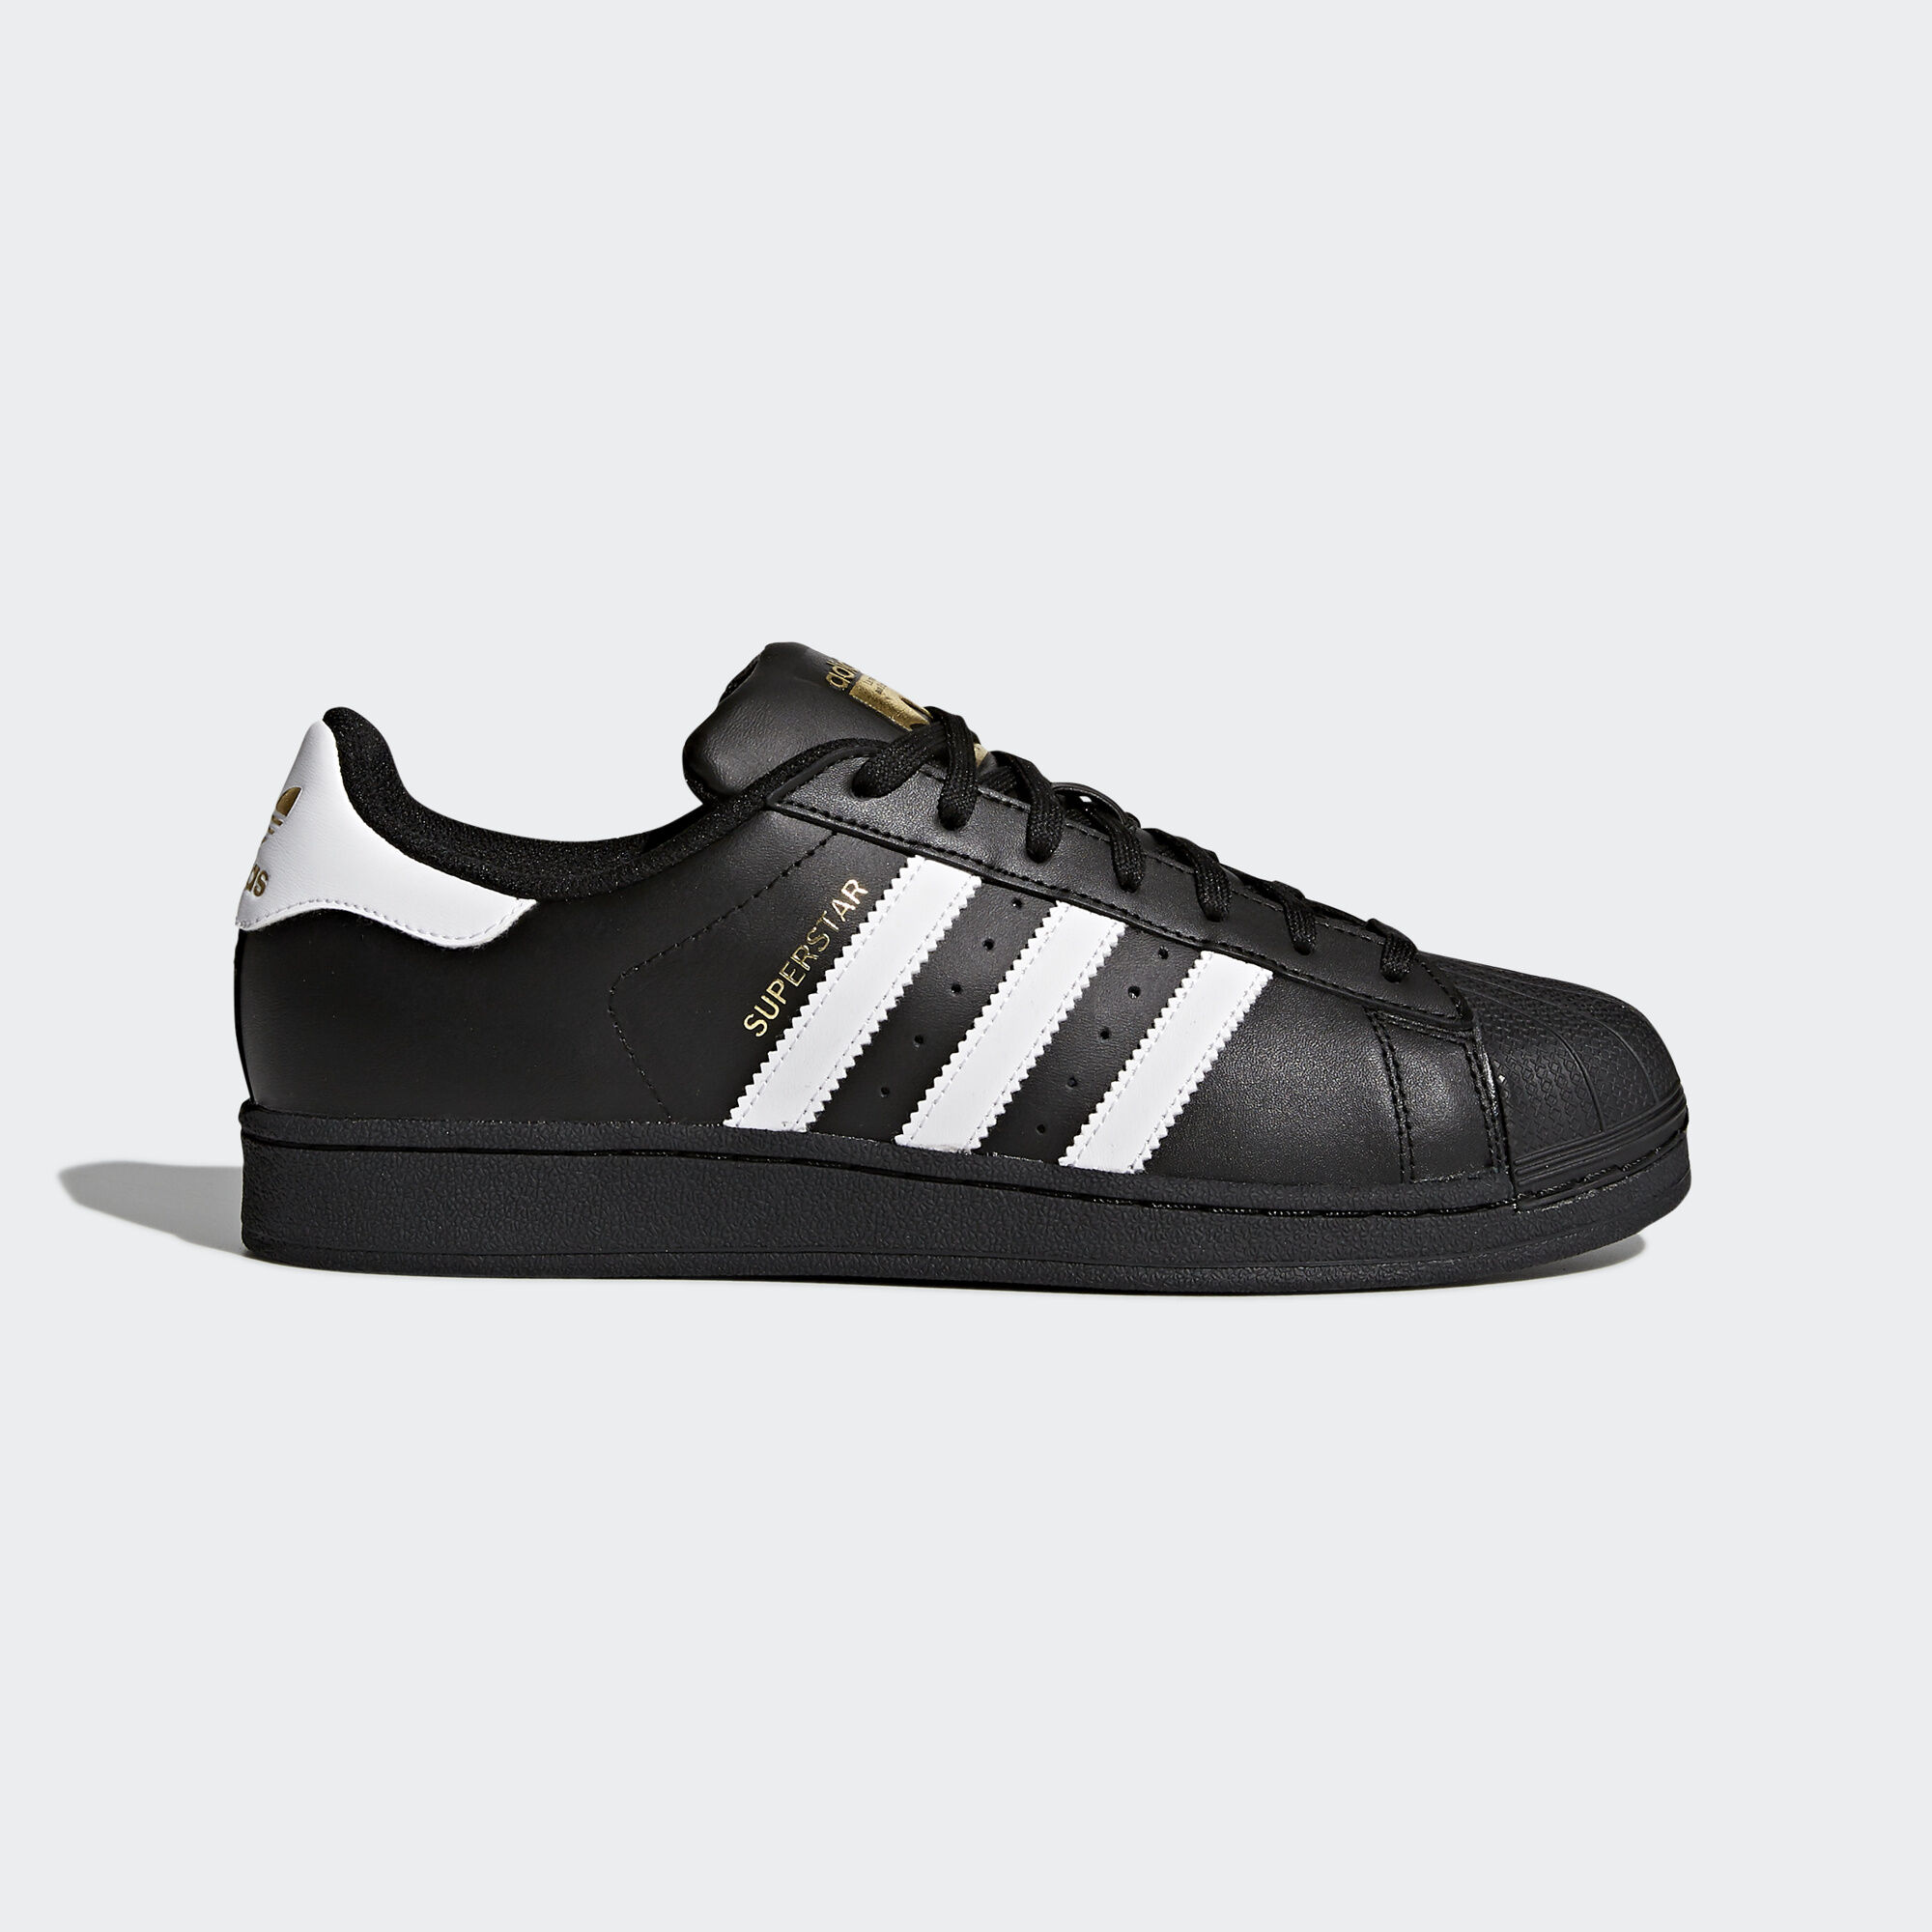 image: adidas superstar [4]